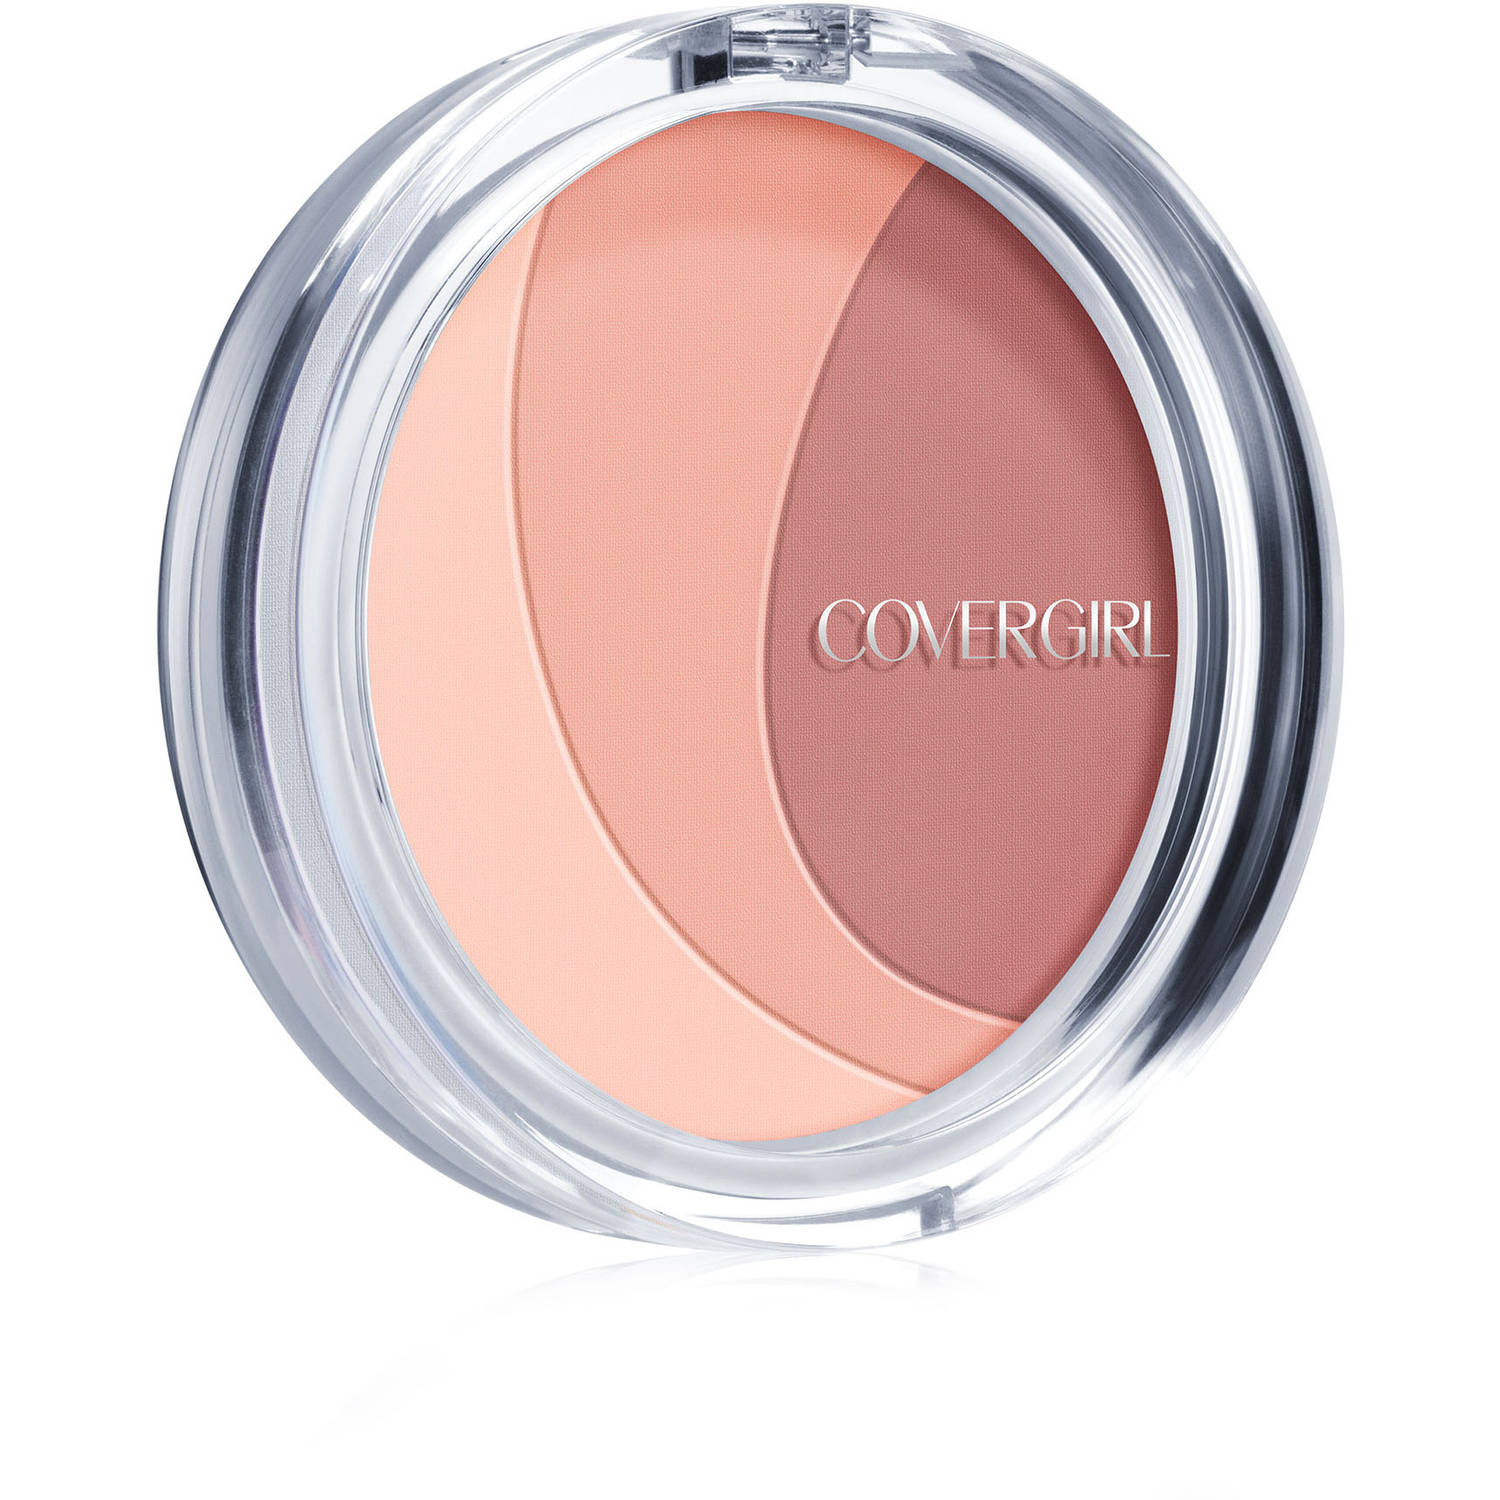 COVERGIRL Clean Glow Lightweight Powder Blush, Roses 100, .42 oz